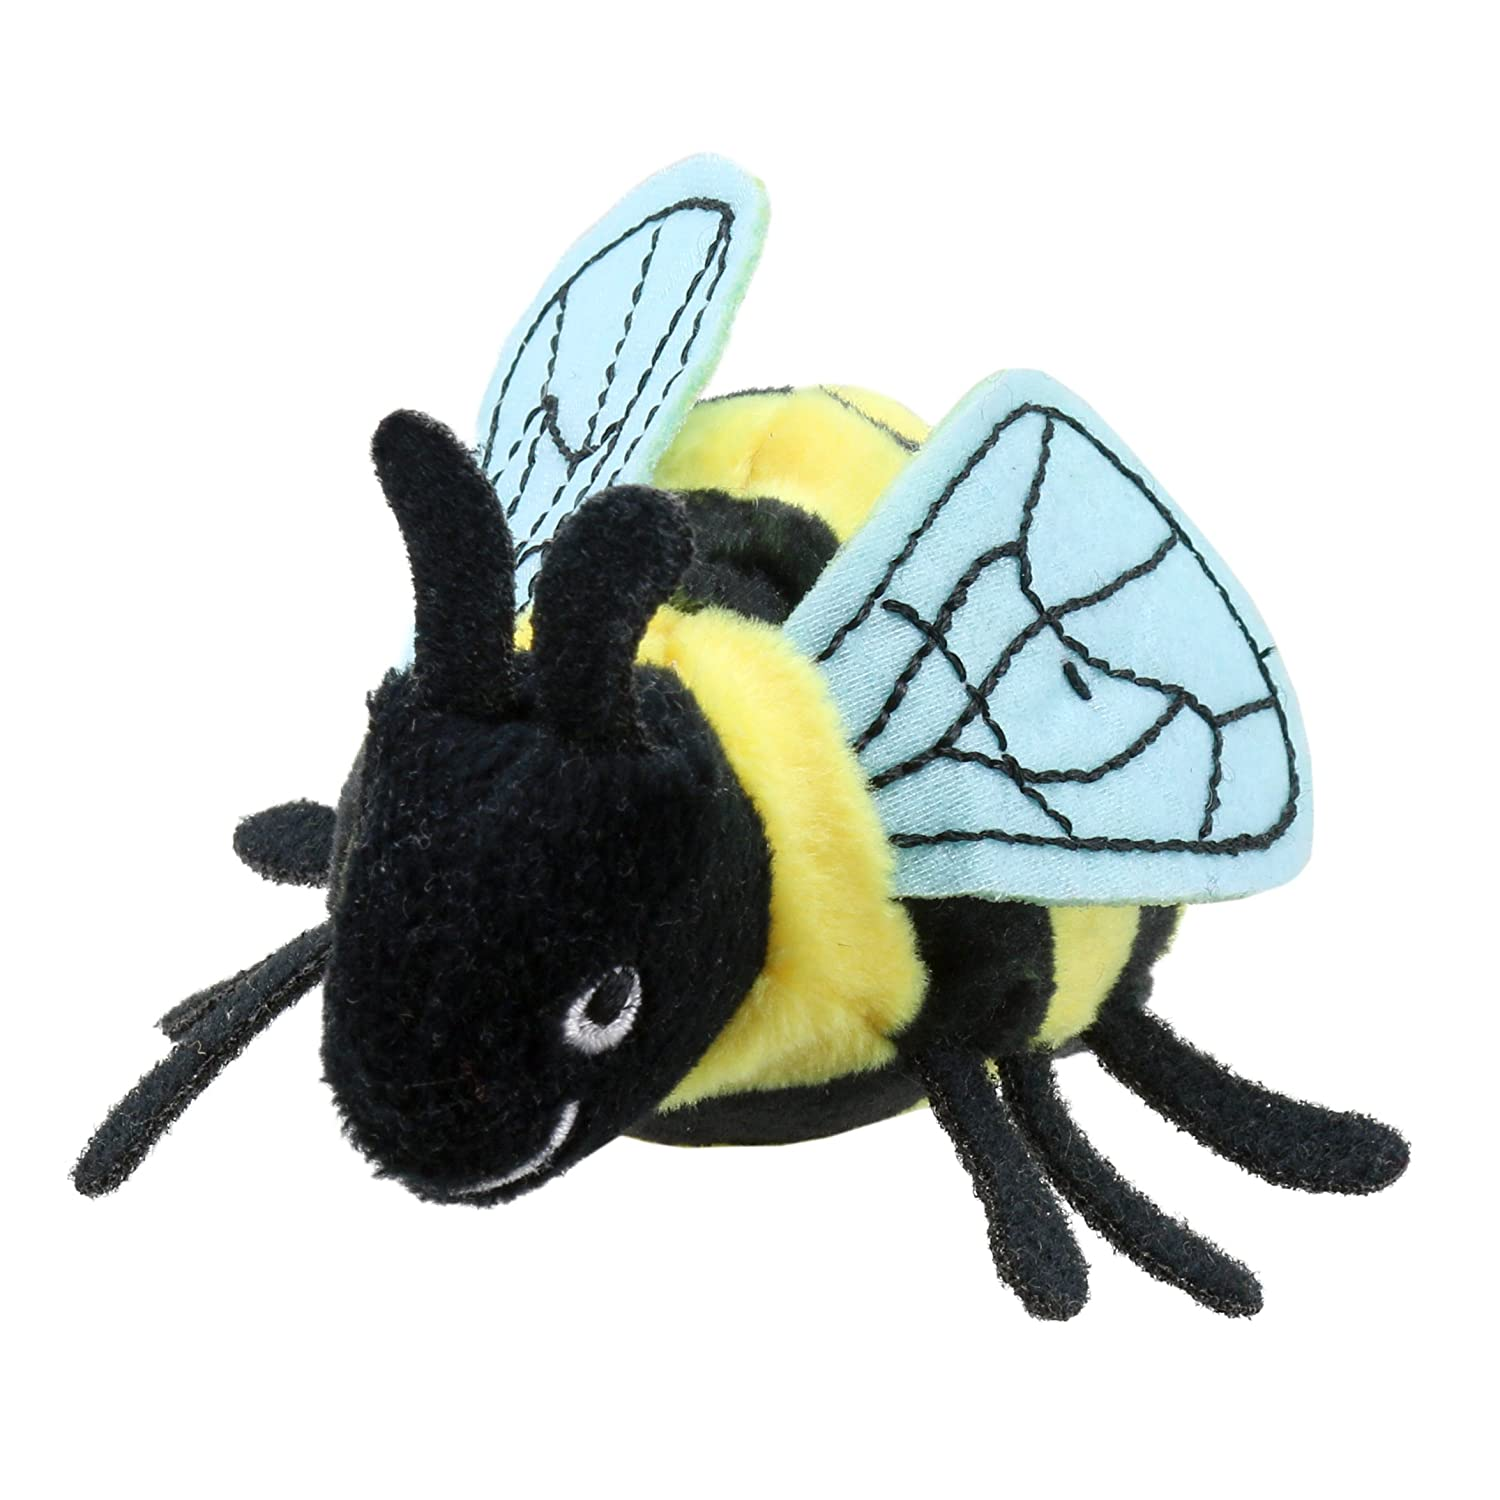 The Puppet Company - Finger Puppets - Bee PC002131